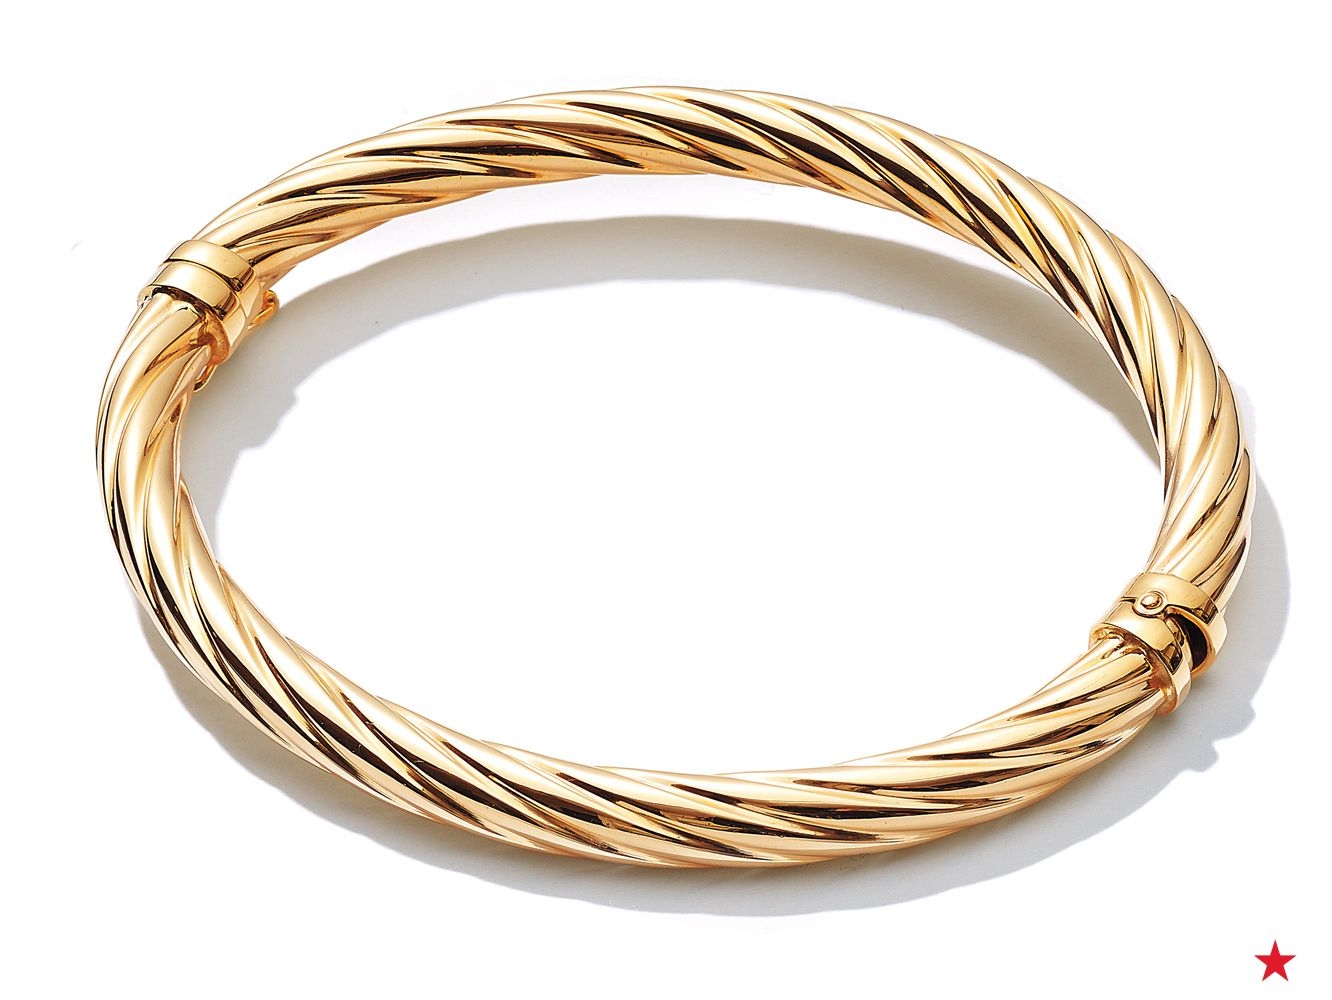 antique bangle bangles style gold bracelet bamboo yellow caymancode karat bracelets k diamond